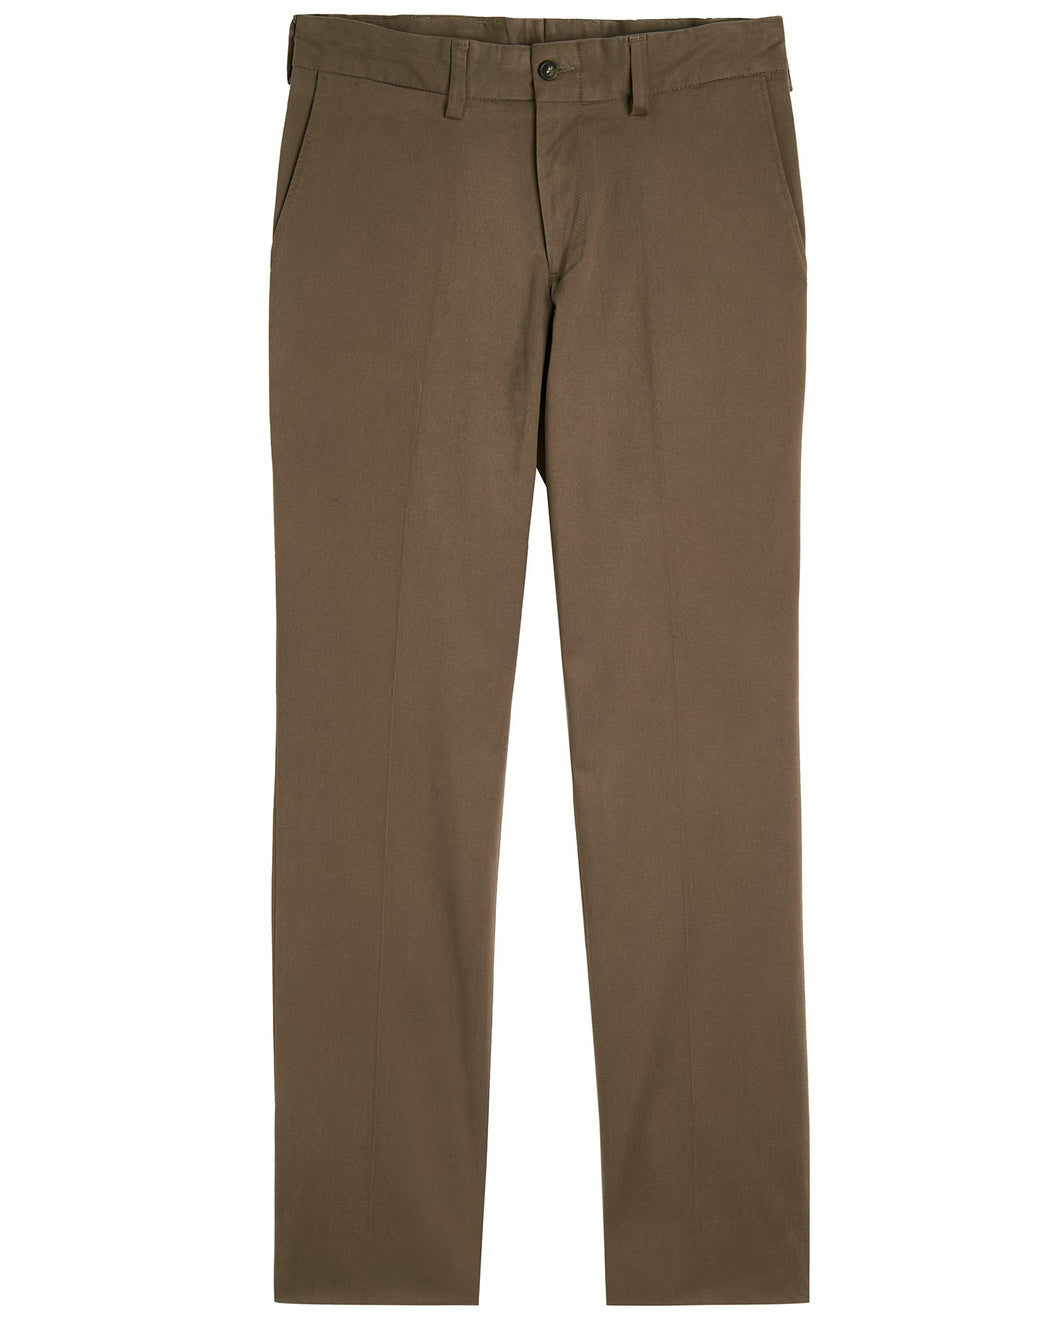 Bills Khakis Straight Fit Smart Khaki Pant | Olive